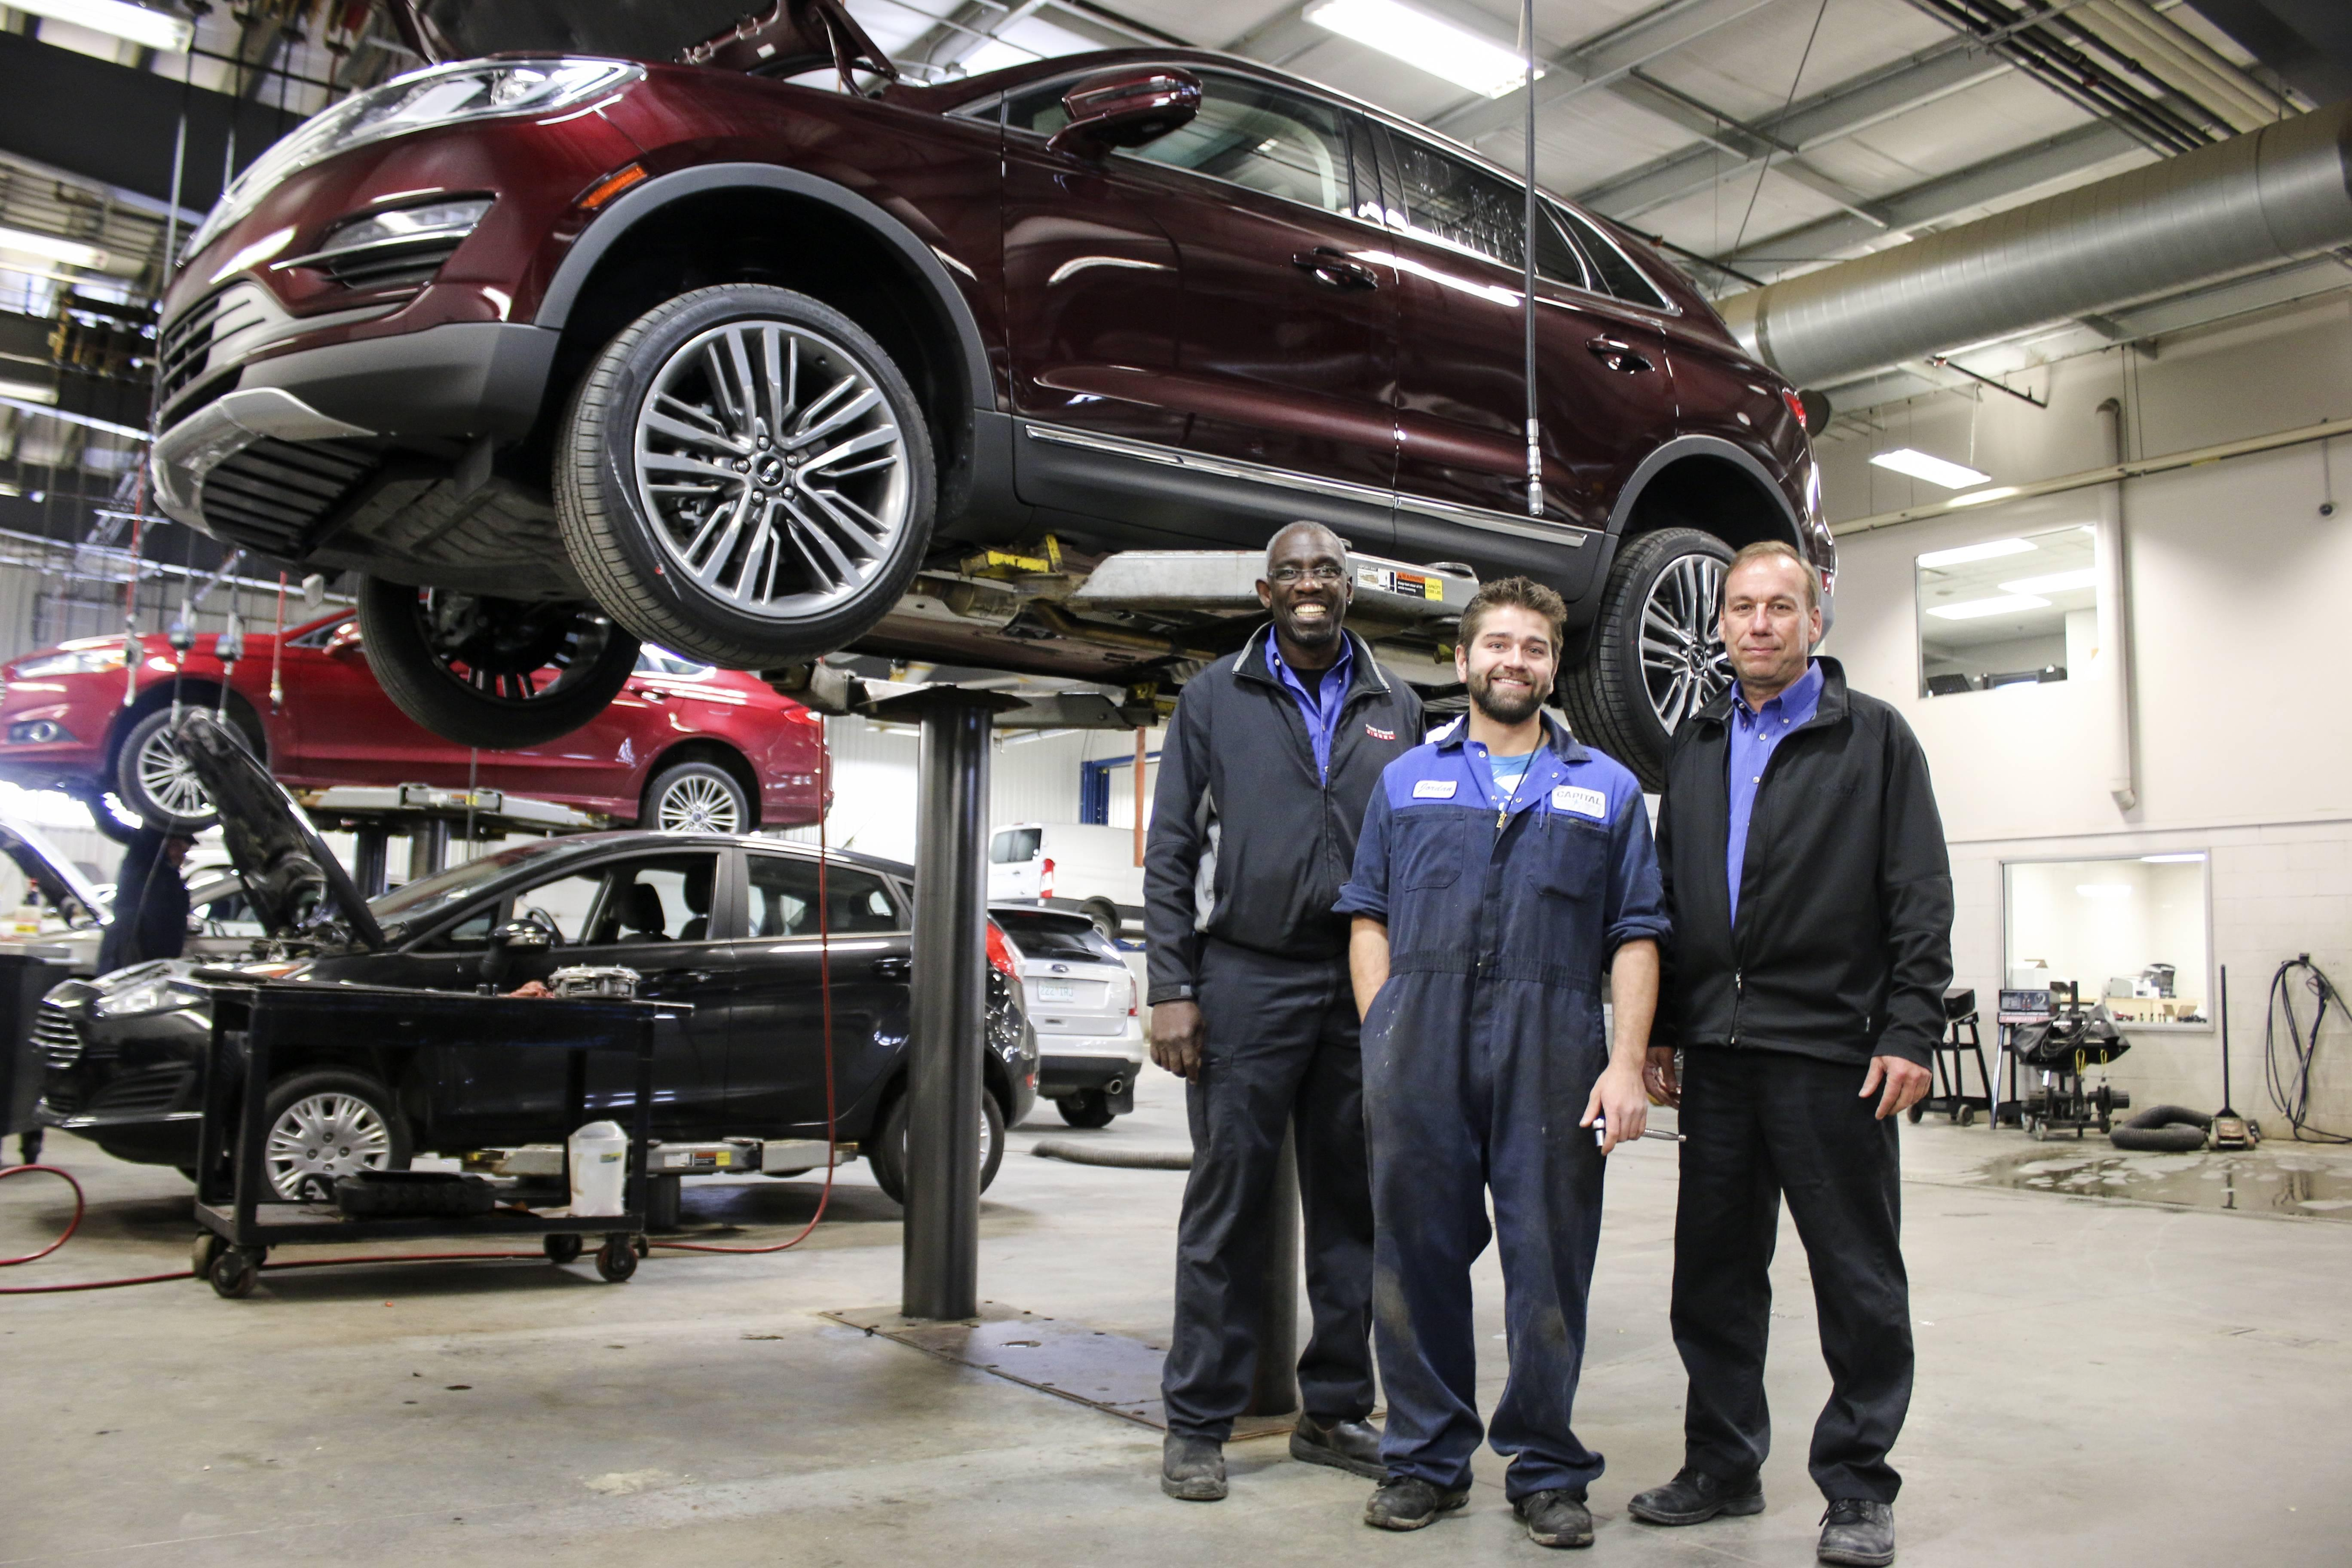 Capital ford service staff